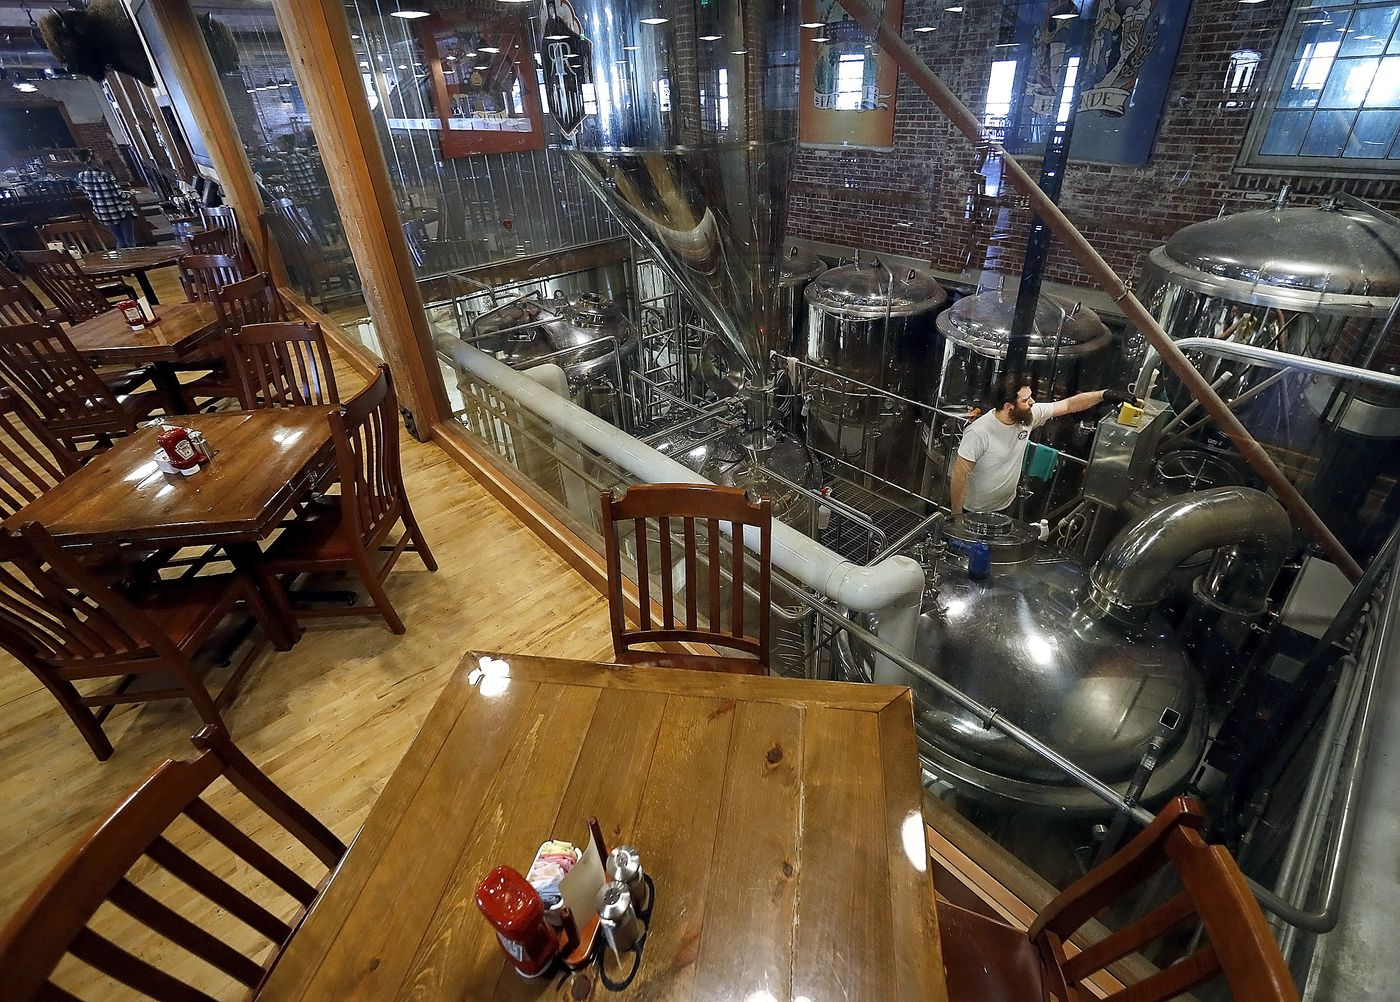 6c56f6633f How craft beer preserves history and draws tourists to small-town ...